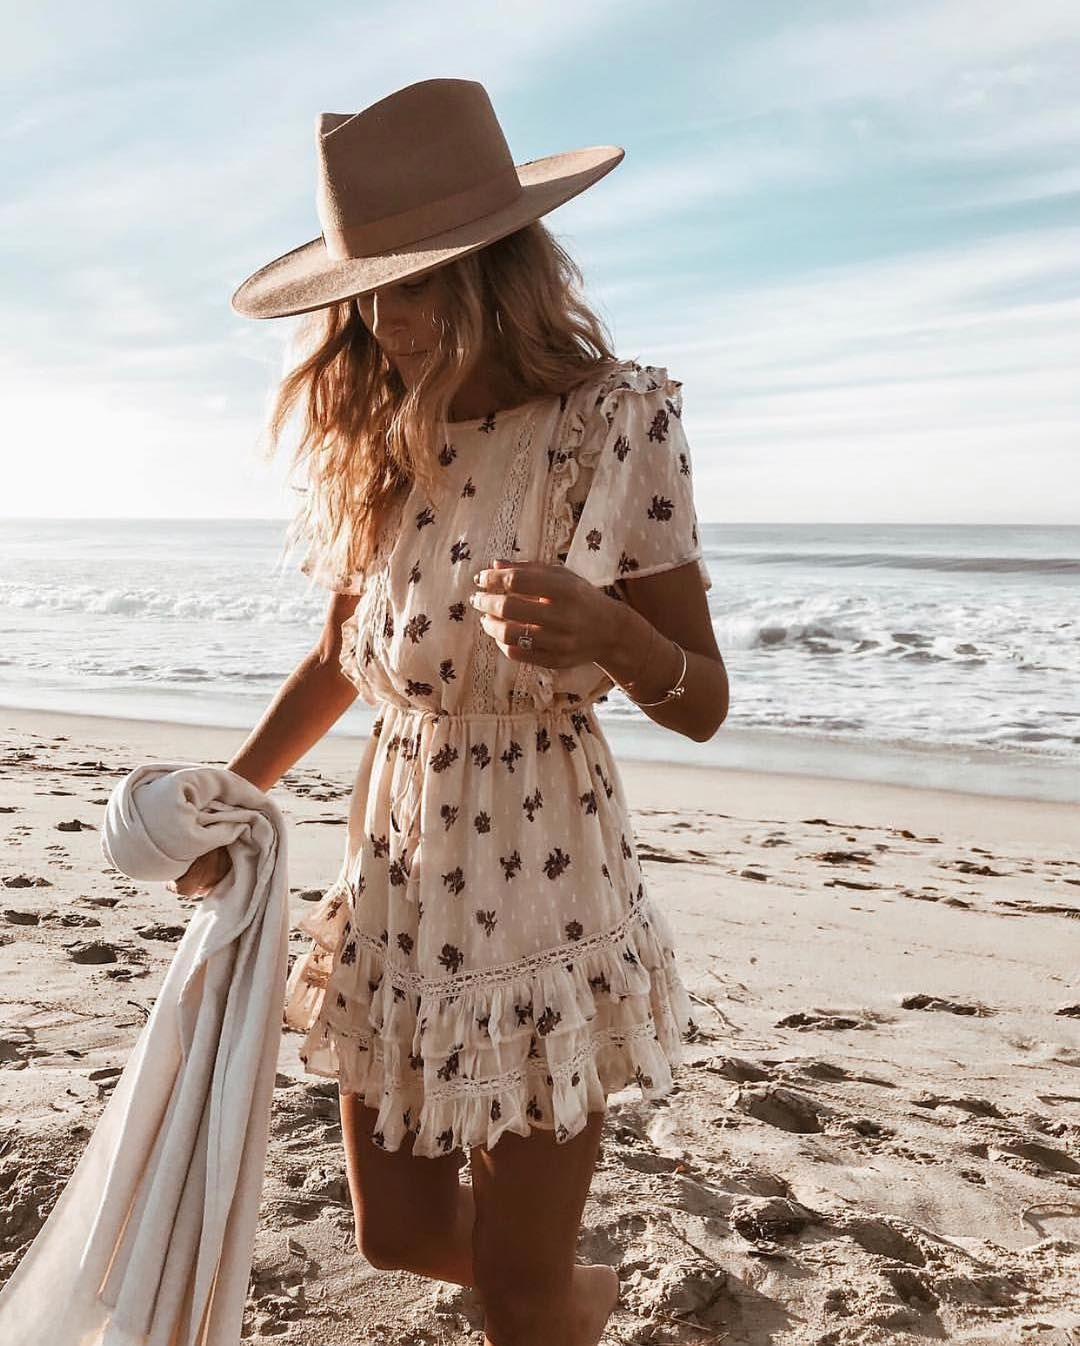 Lack Of Color Hats On Instagram Lindsaymarcella In Her Teak Rancher Back In Stock Online But Not For Lon Summer Outfits Women Fashion Outfits With Hats